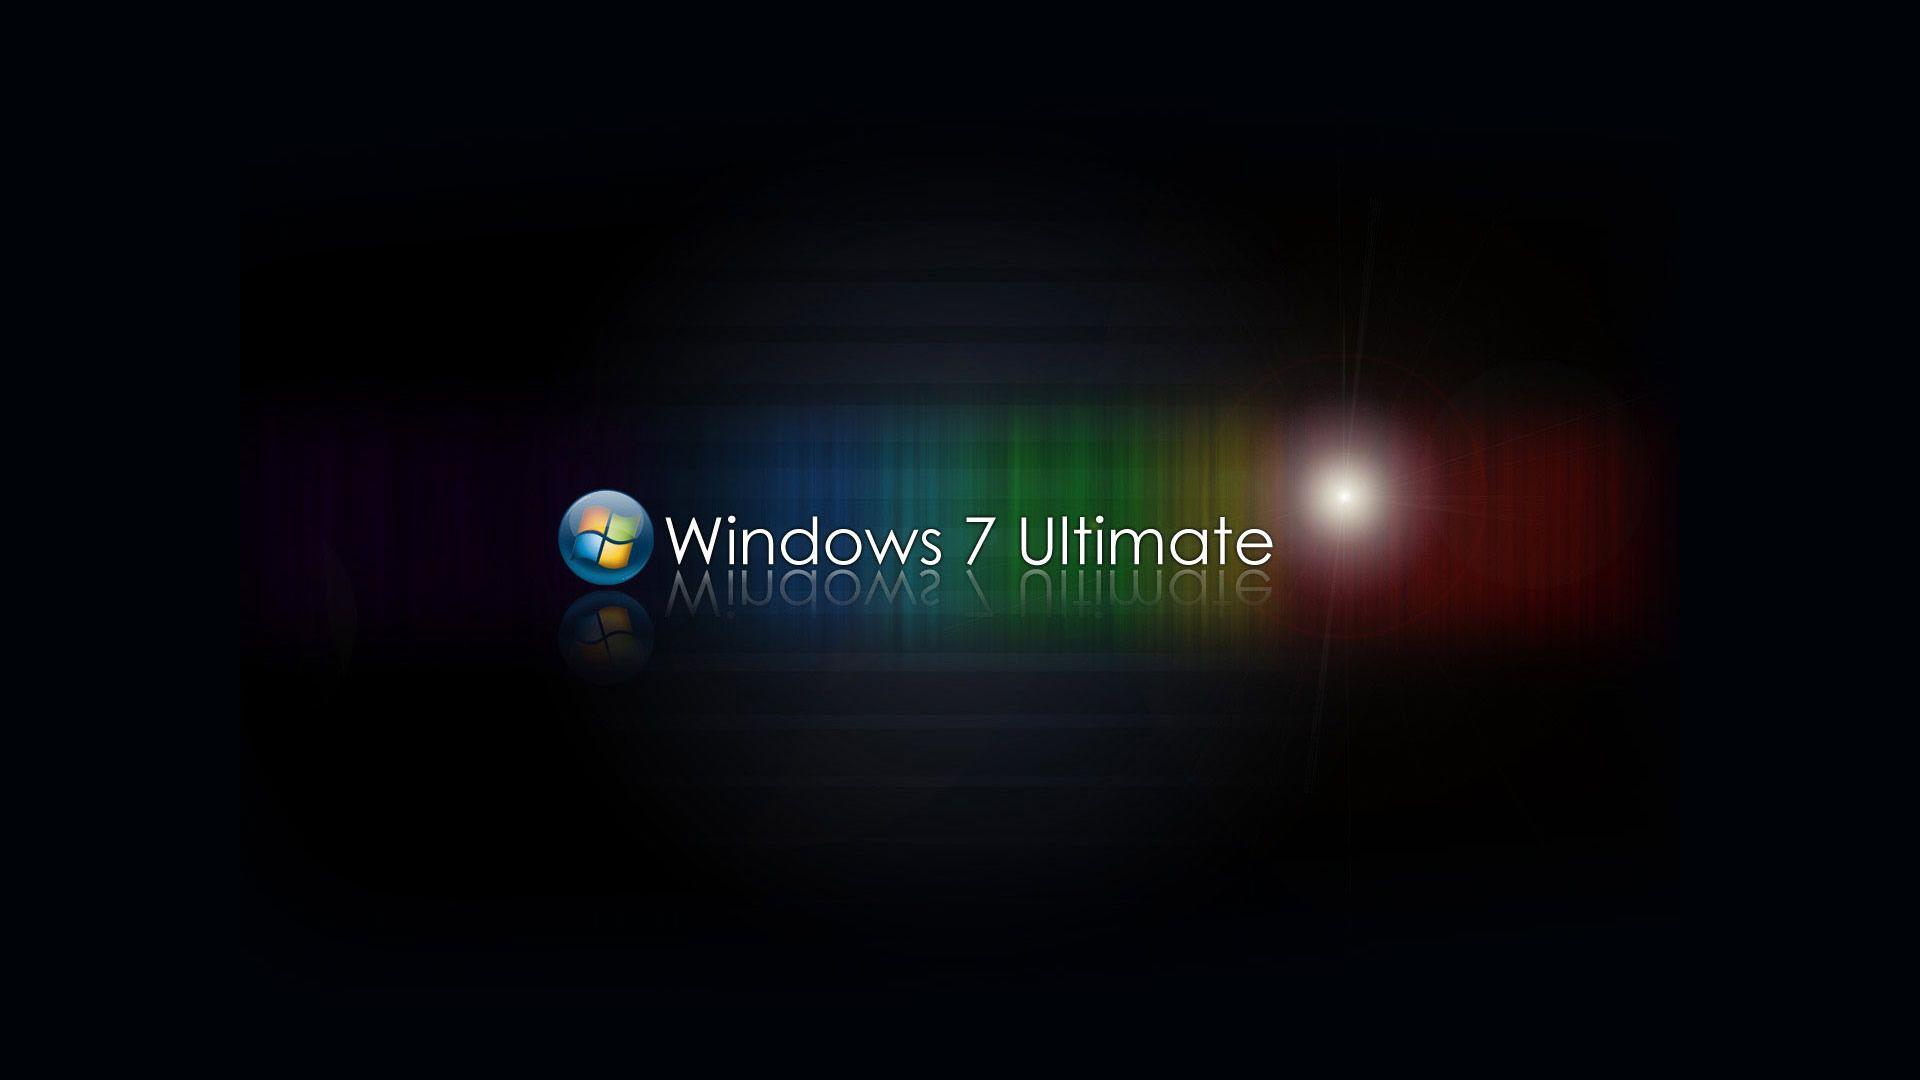 1920x1080 windows 7 wallpaper: Windows 7 Wallpapers 1920x1080